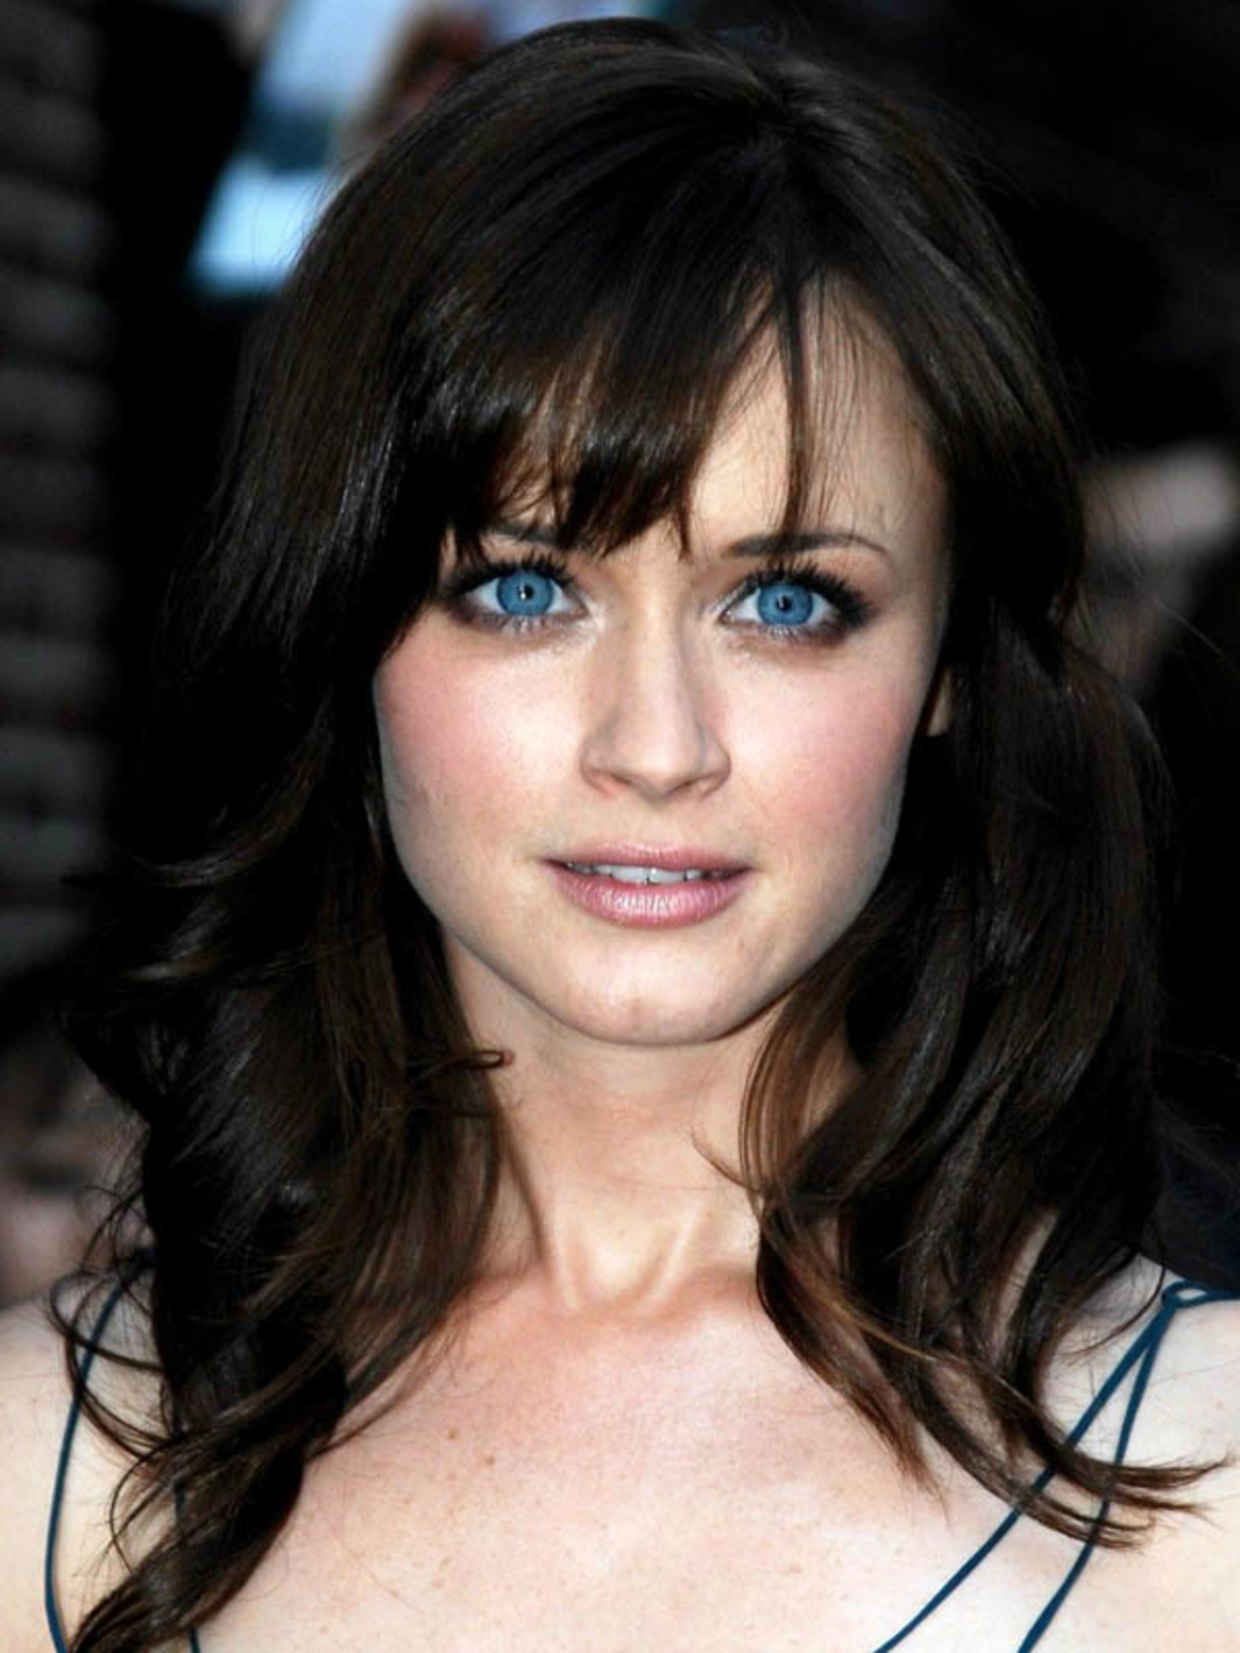 Ask A Hairstylist The Best Hair Colours For Natural Brunettes With Fair Skin Brown Hair Blue Eyes Brown Hair Blue Eyes Pale Skin Brown Hair Pale Skin